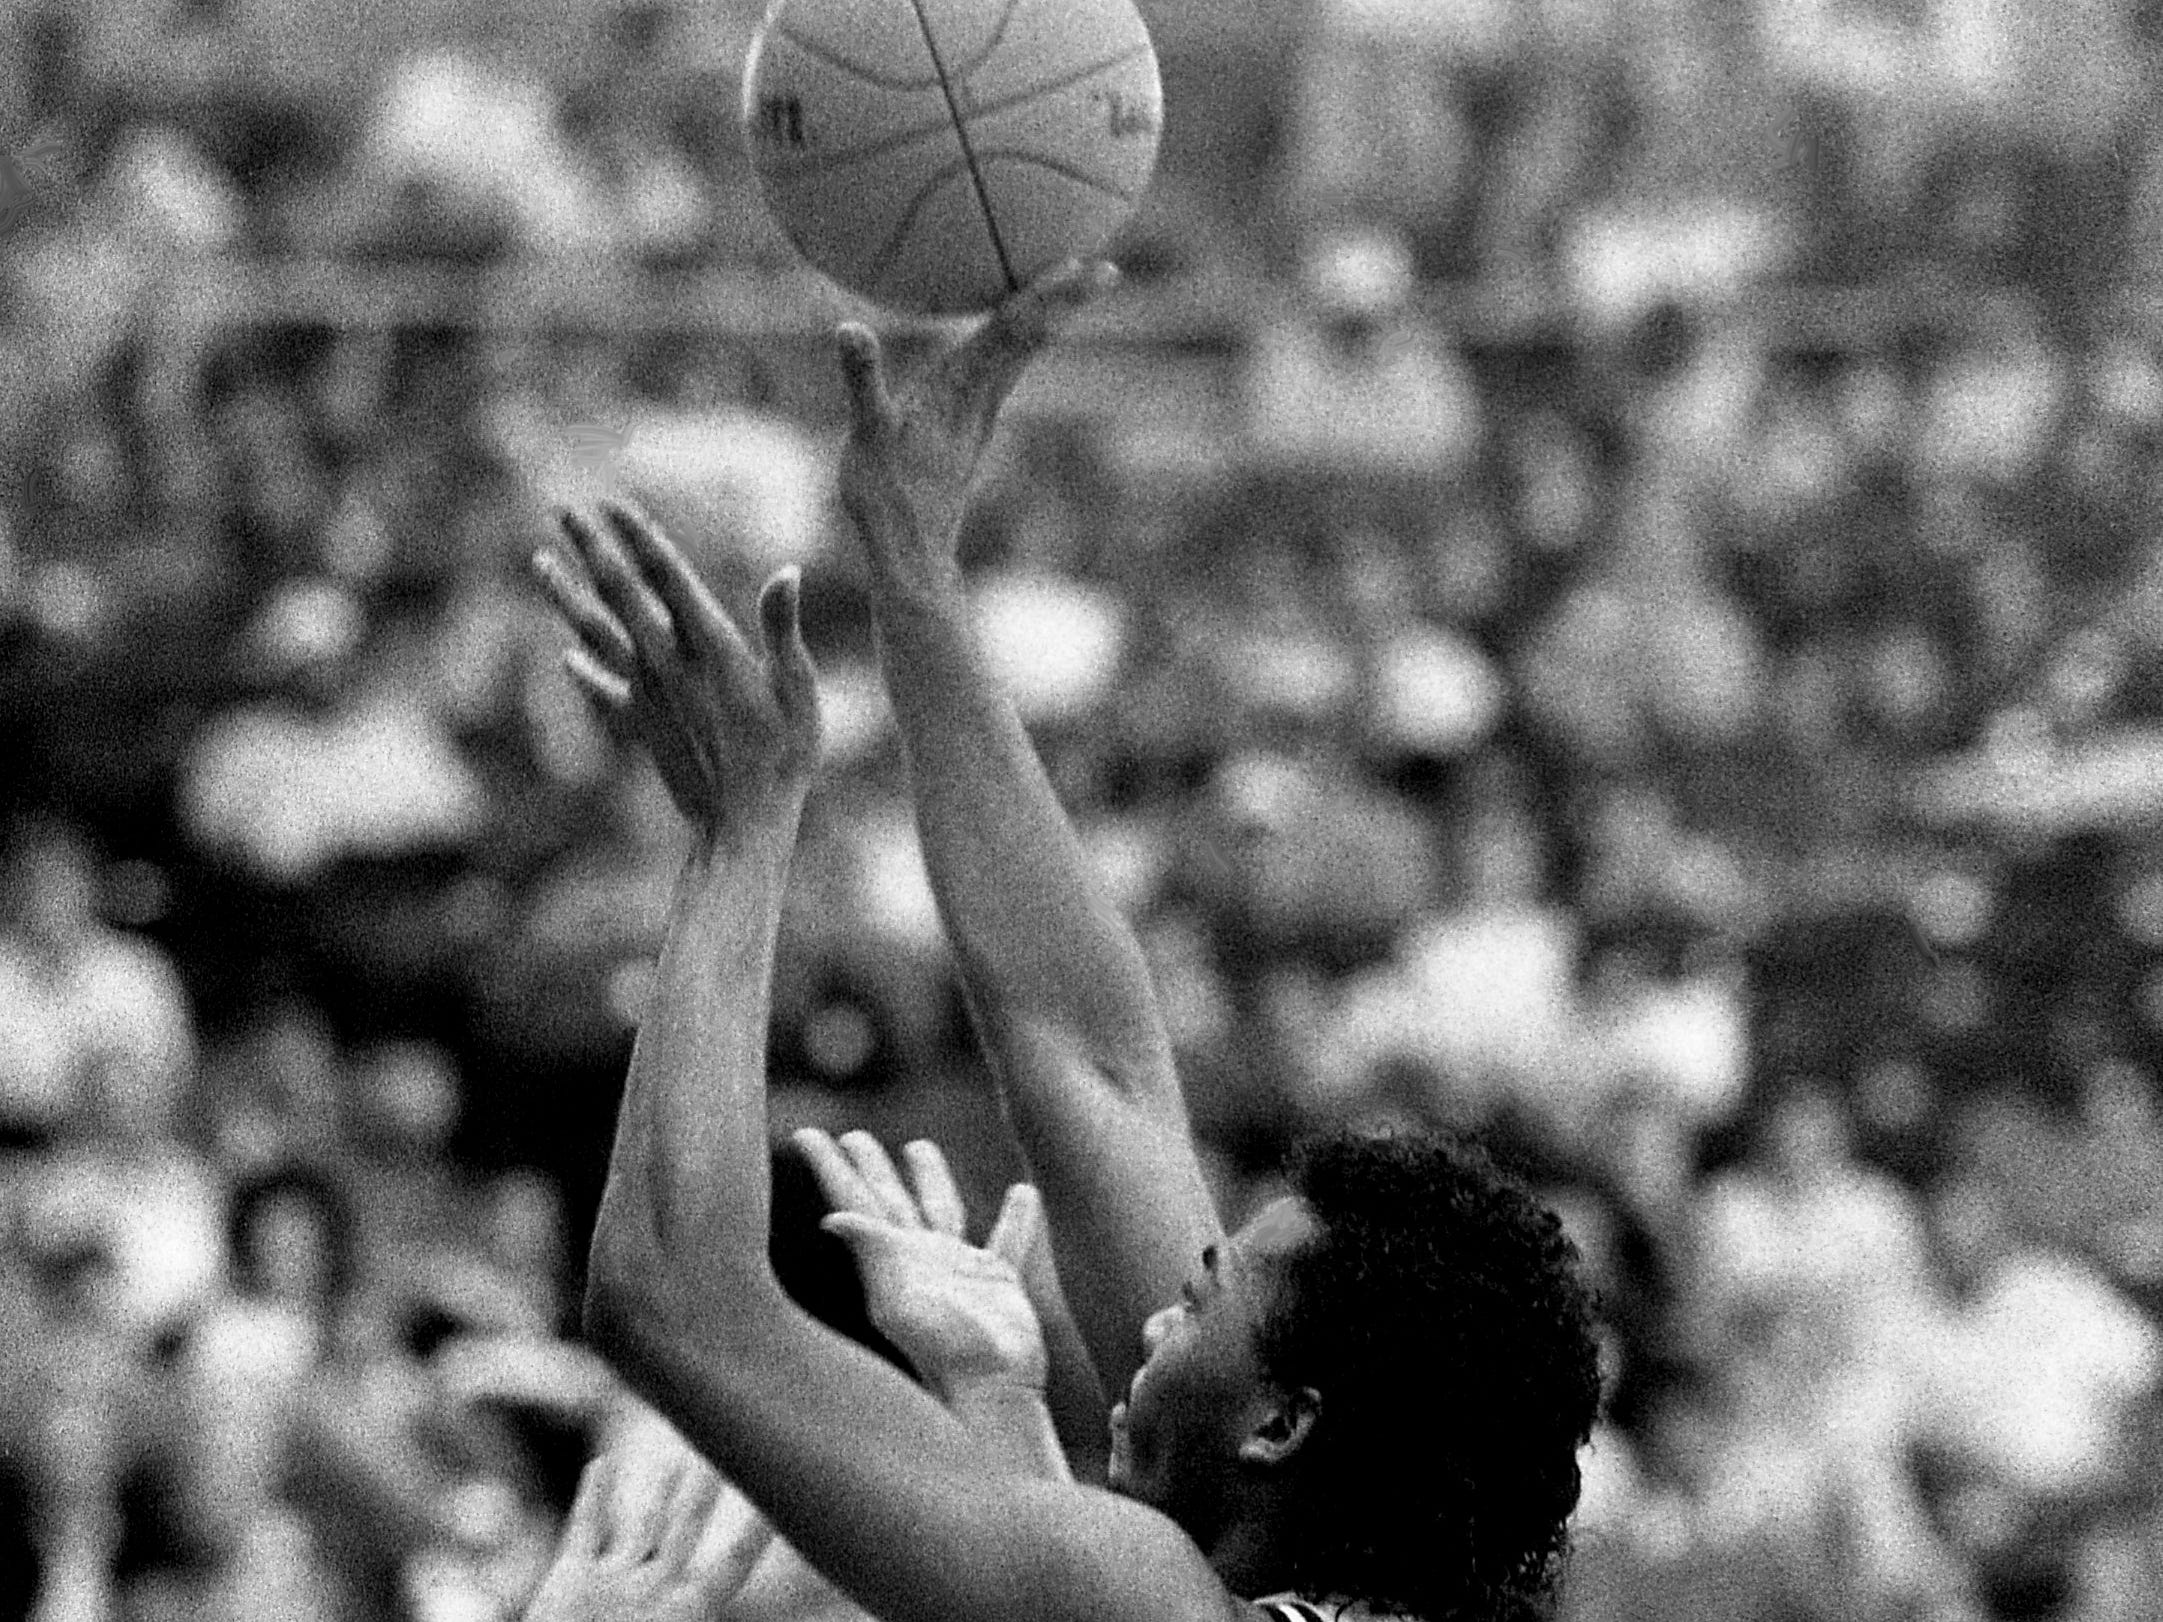 East Robertson High senior Carlus Groves puts up the game-winning shot over Perry County High defender Stephen Lebetter in the TSSAA Class A semifinal game at MTSU's Murphy Center in Murfreesboro March 17, 1989. The 63-61 victory allows East Robertson to defend it two straight Class A titles and their bid to win three consecutive Class A titles.